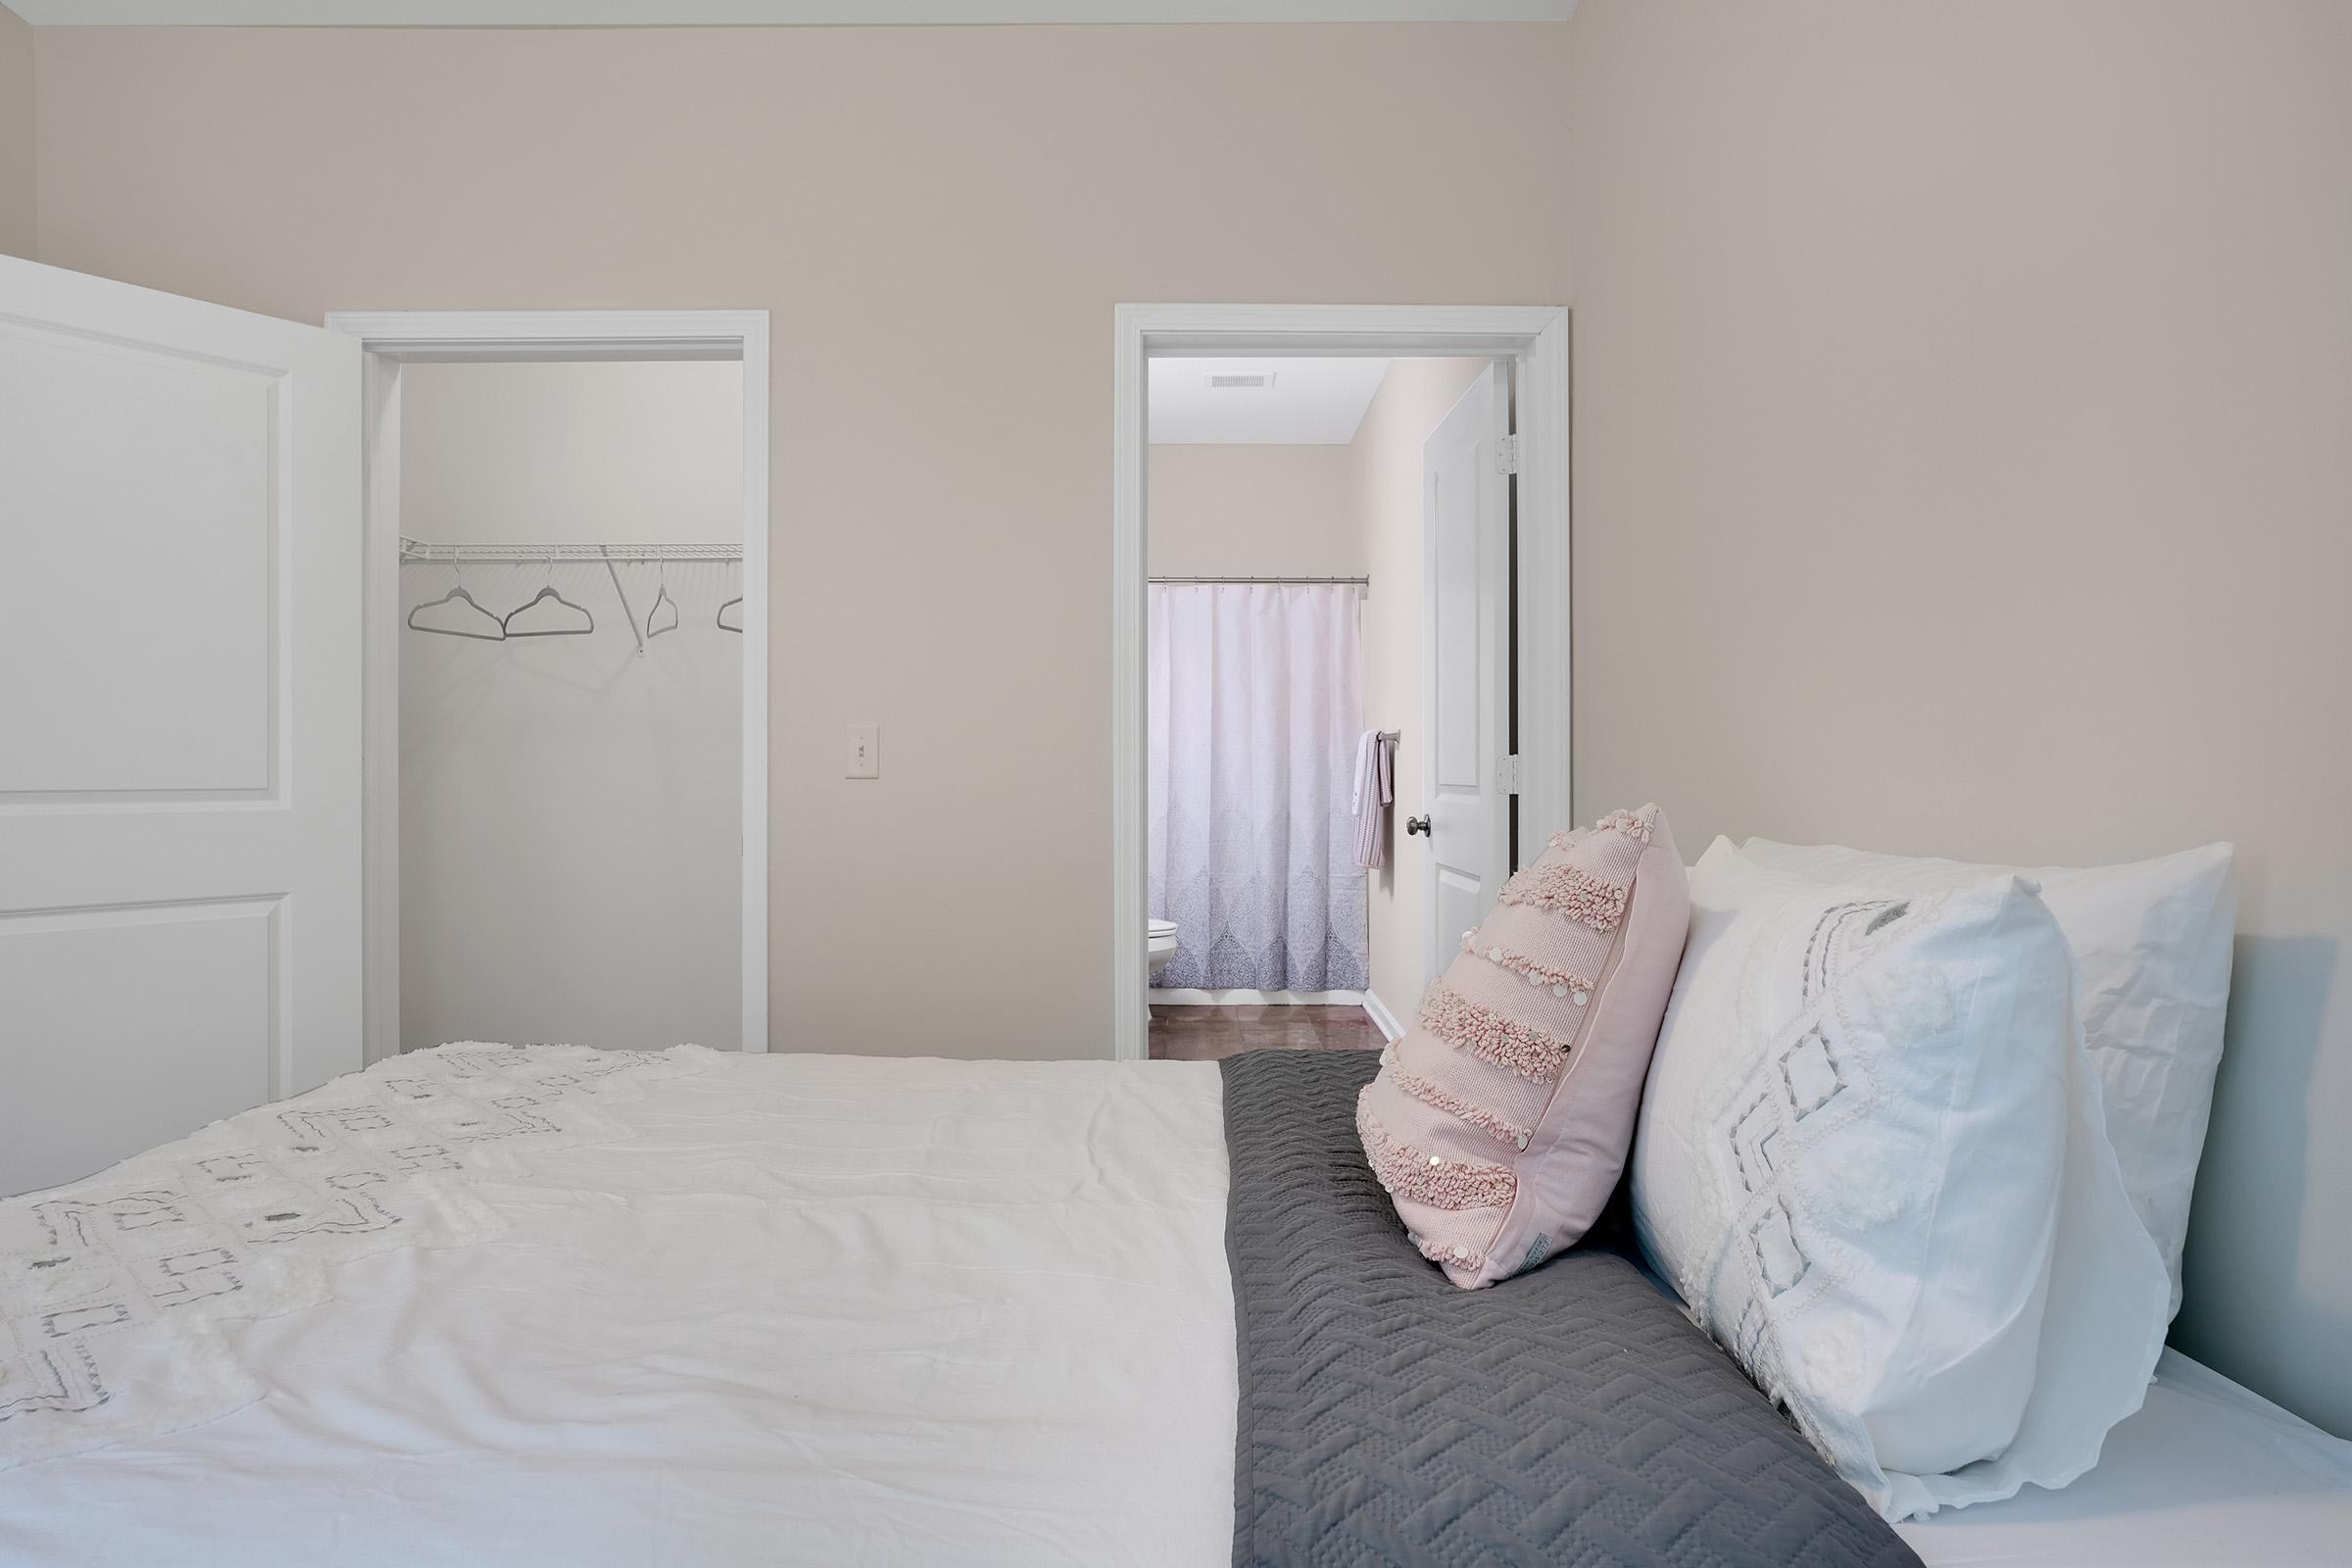 a large white bed sitting in a room